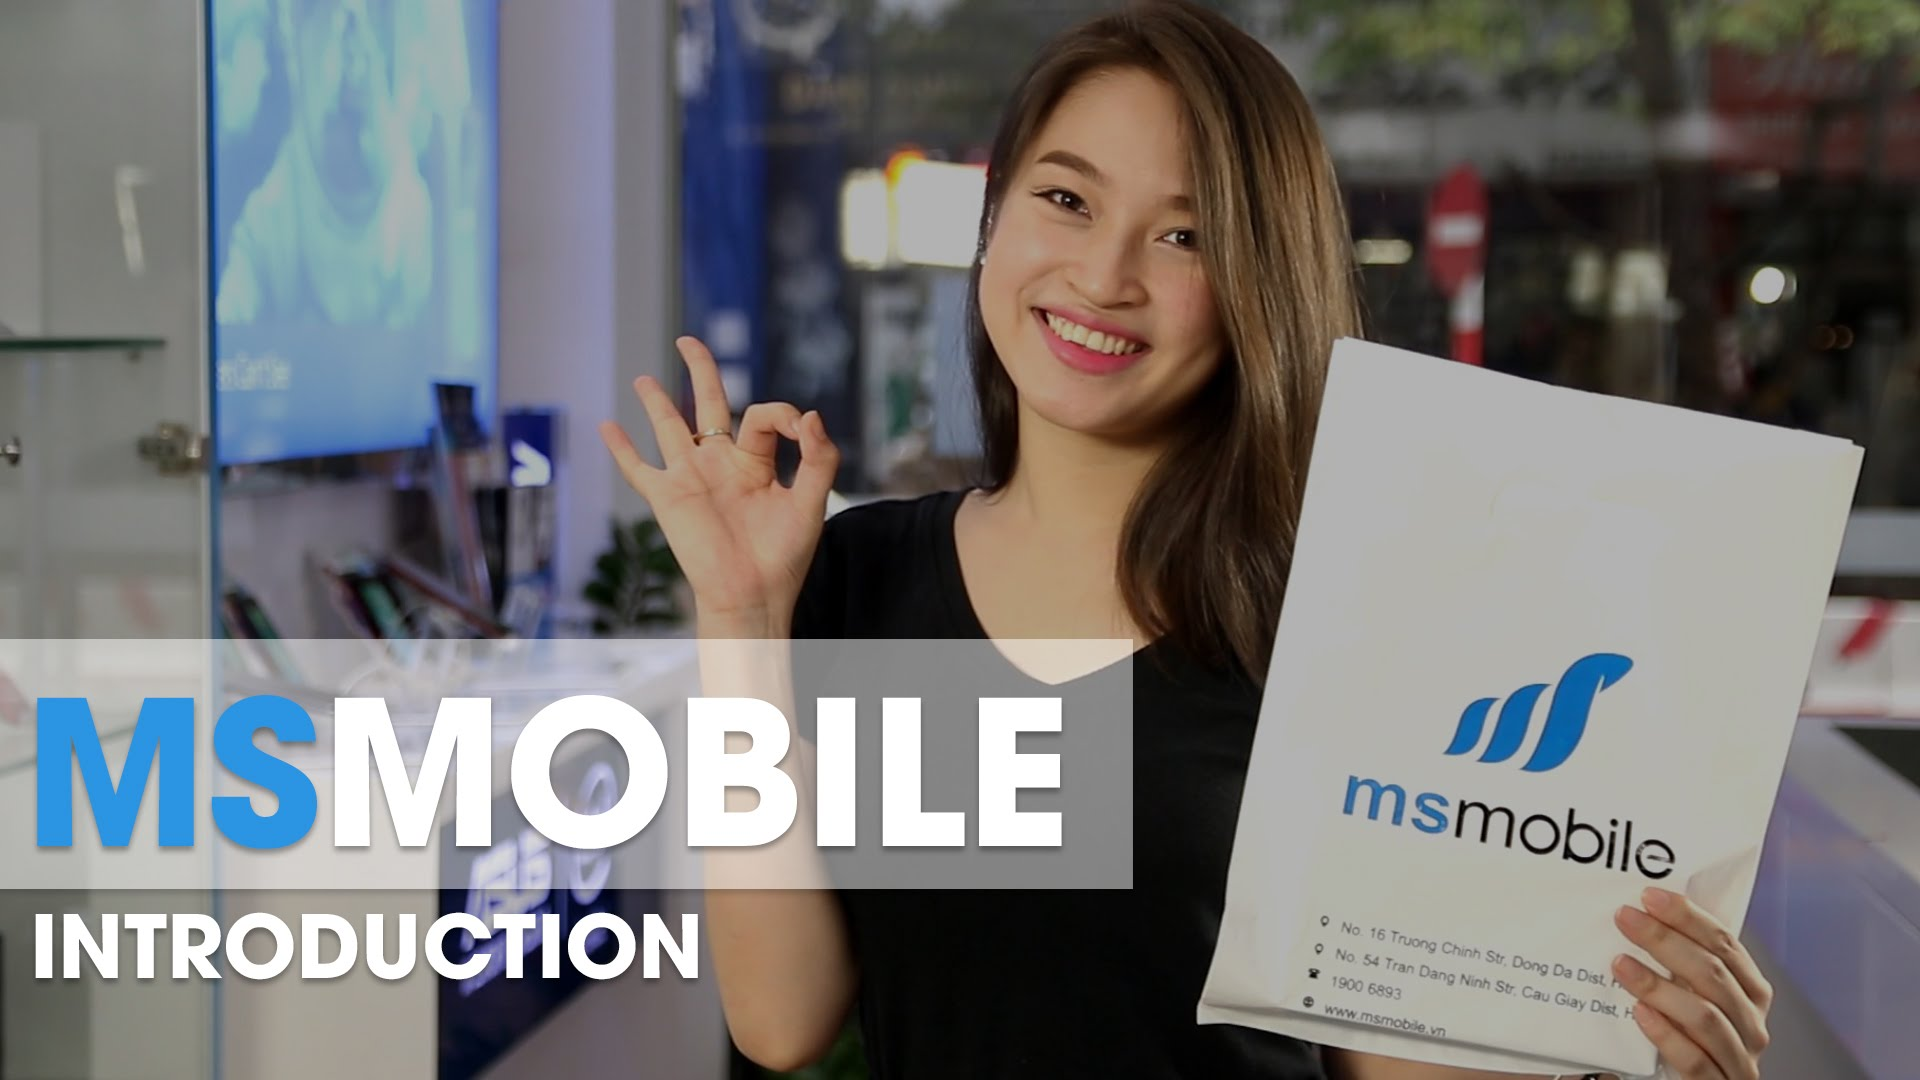 ms mobile lừa đoả